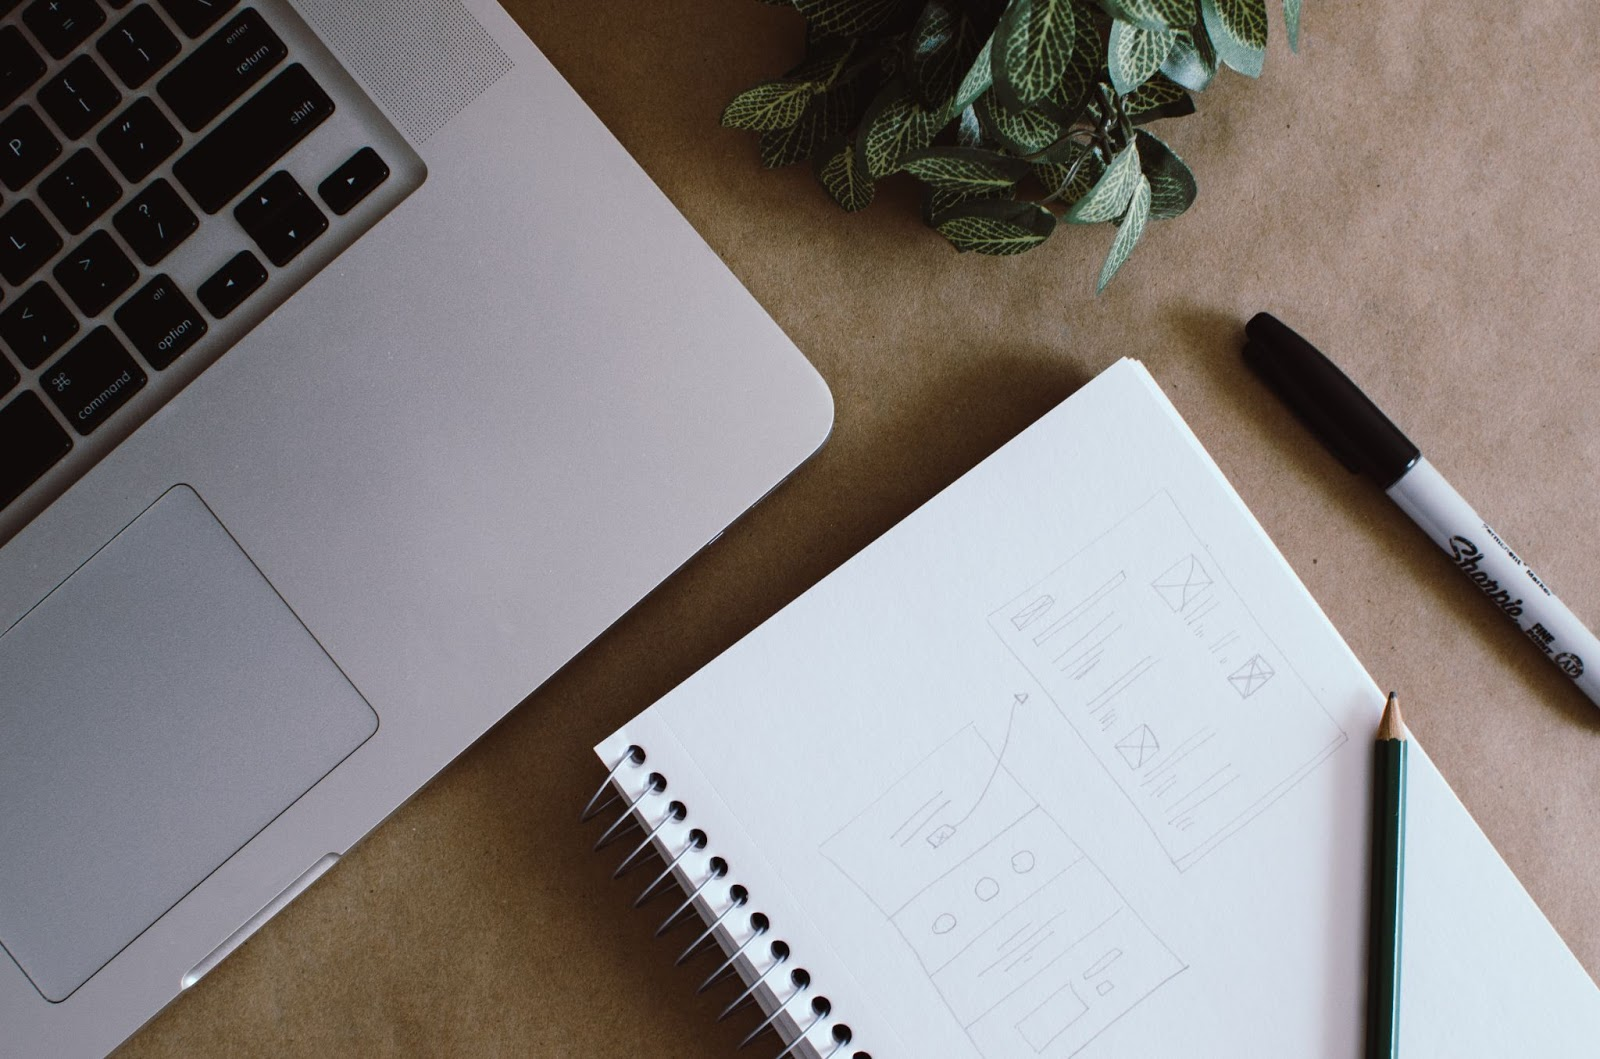 An image of a desktop. On the desktop there is a laptop, a plant, a notebook, a pencil, and a Sharpie.